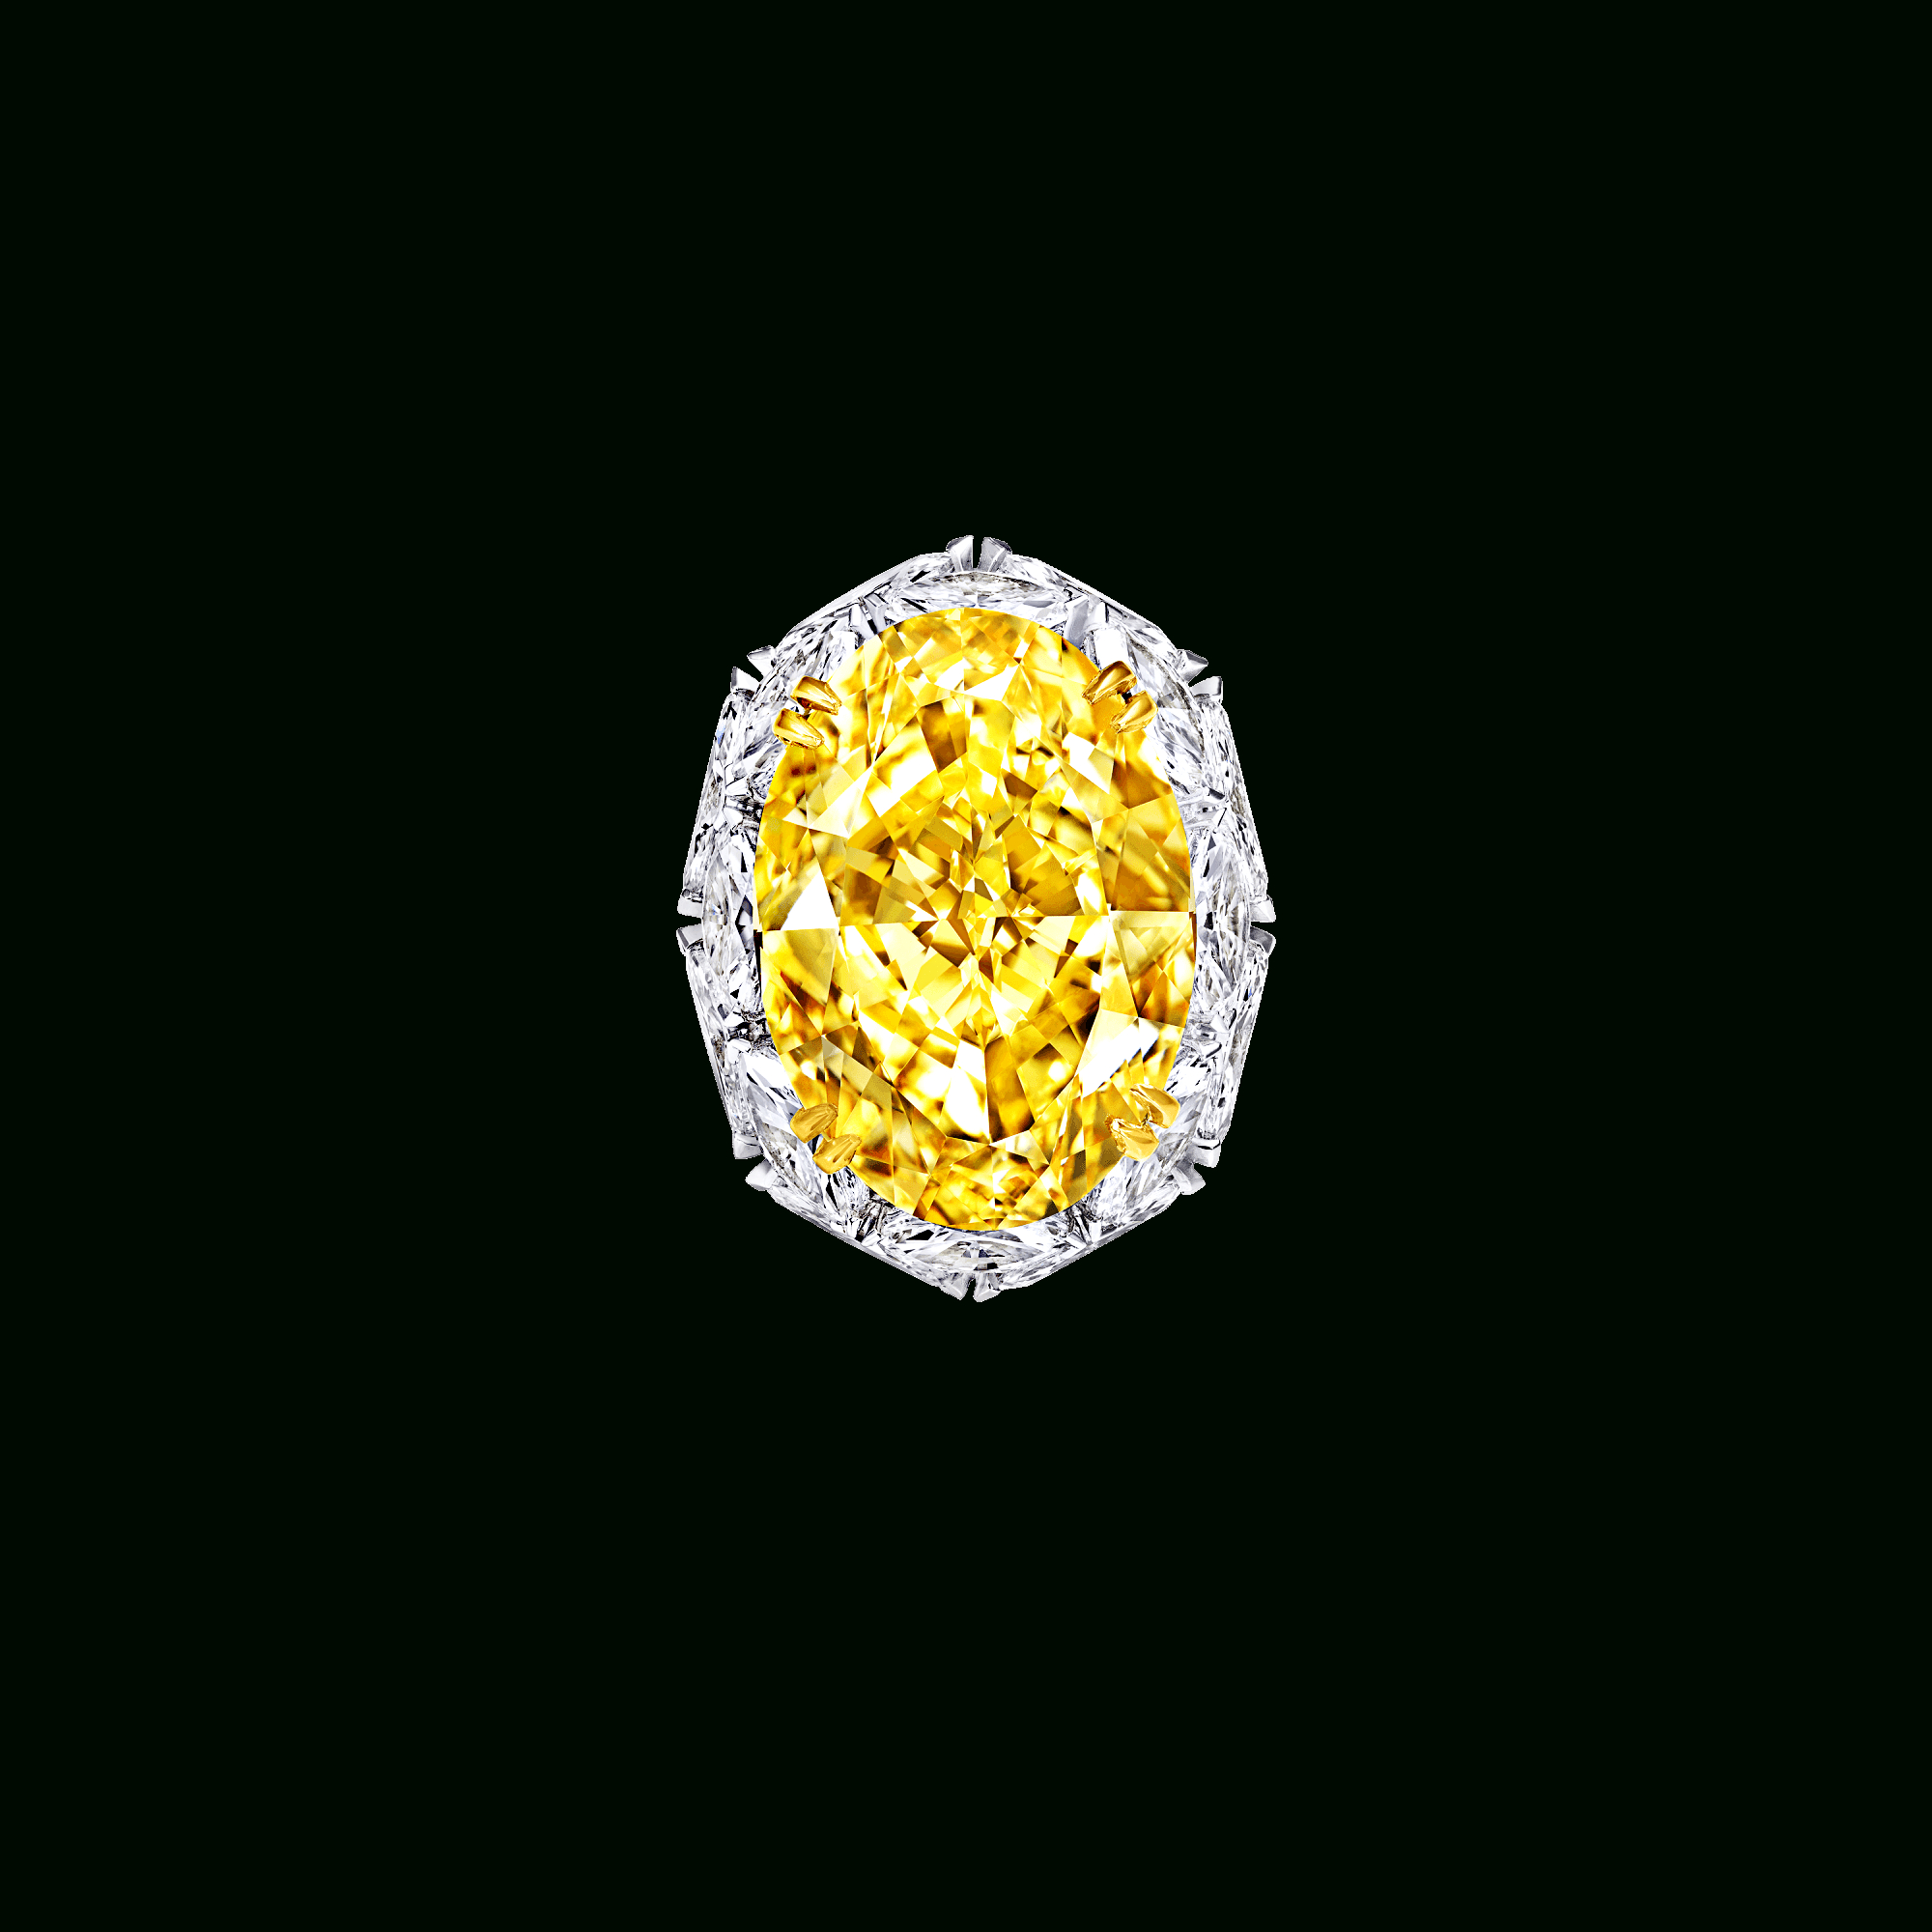 Oval Shape Yellow And White Diamond Ring | Luxury Jewelry In With Oval Shaped Yellow Diamond Rings (View 10 of 25)